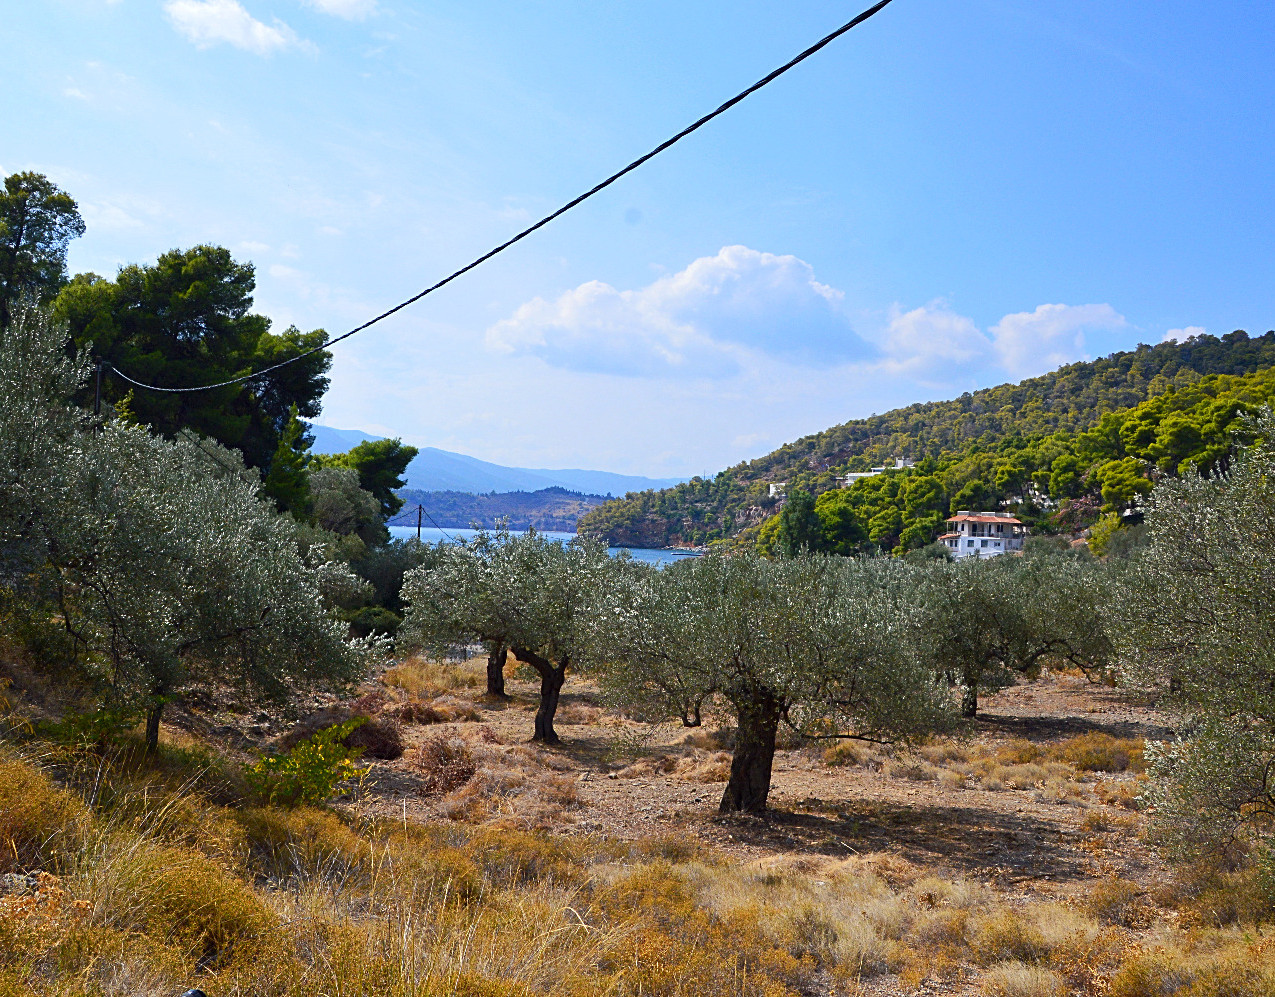 The most stunning entrance to a beach via this olive grove that leads down to the water